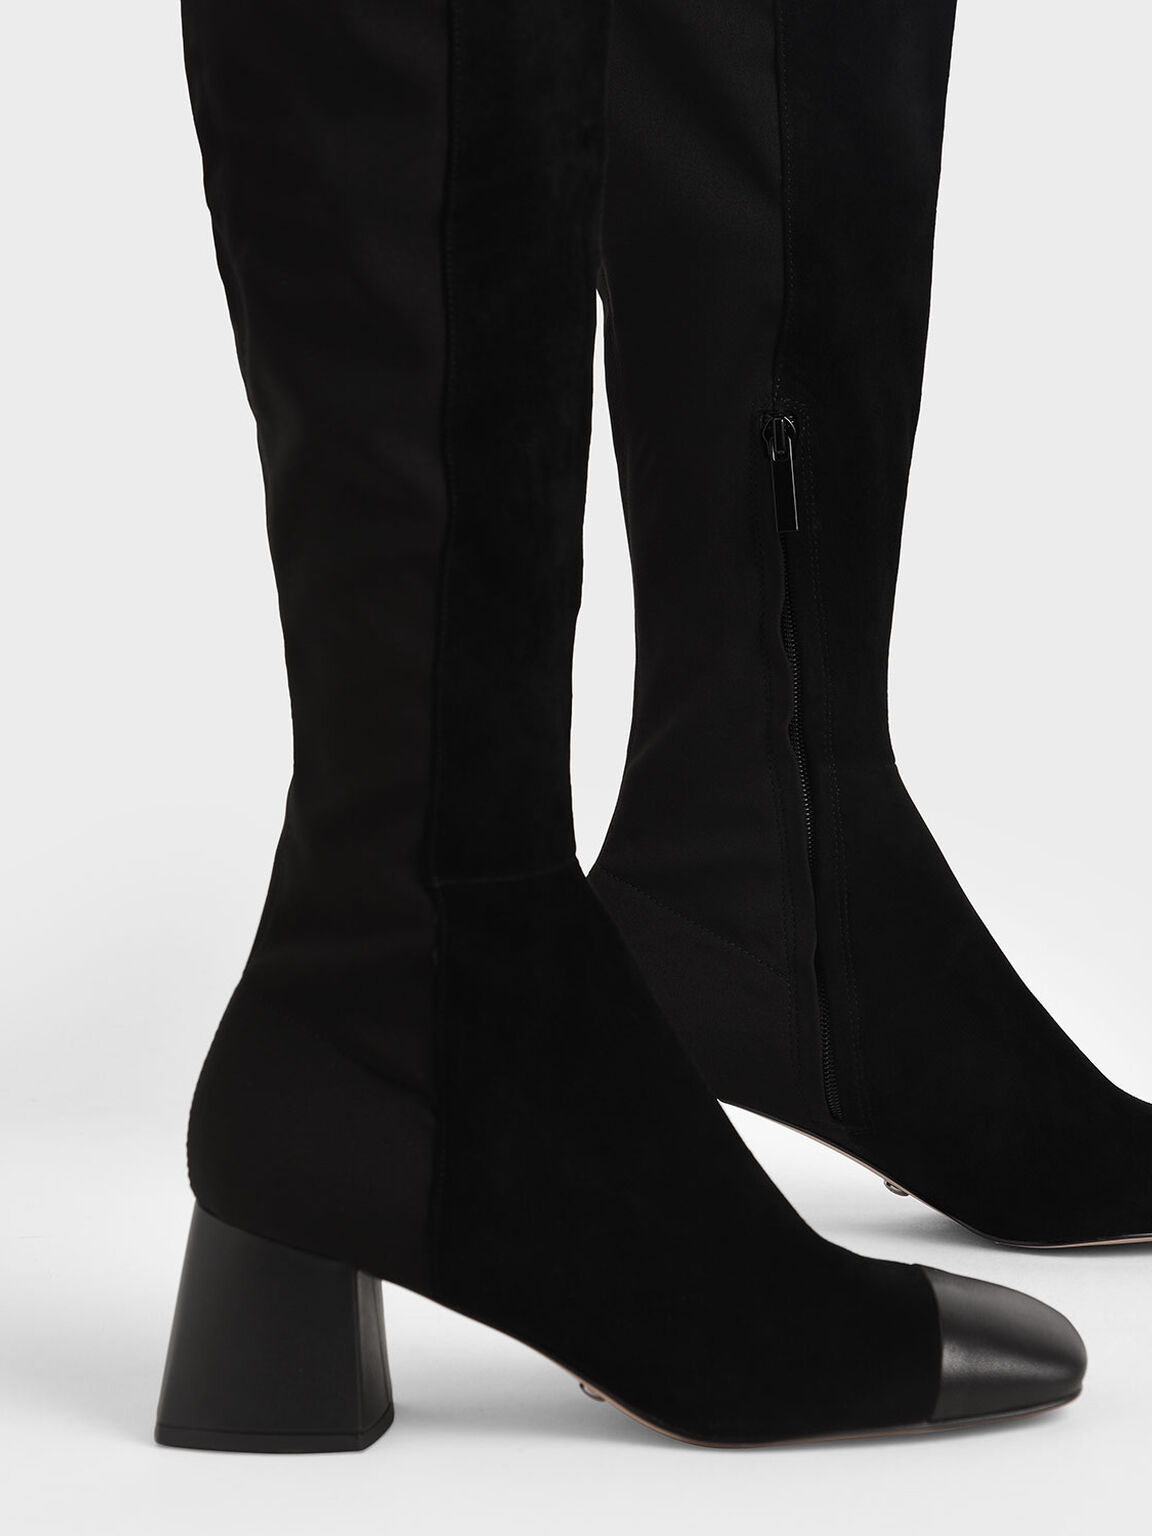 Leather & Kid Suede Thigh High Boots, Black, hi-res